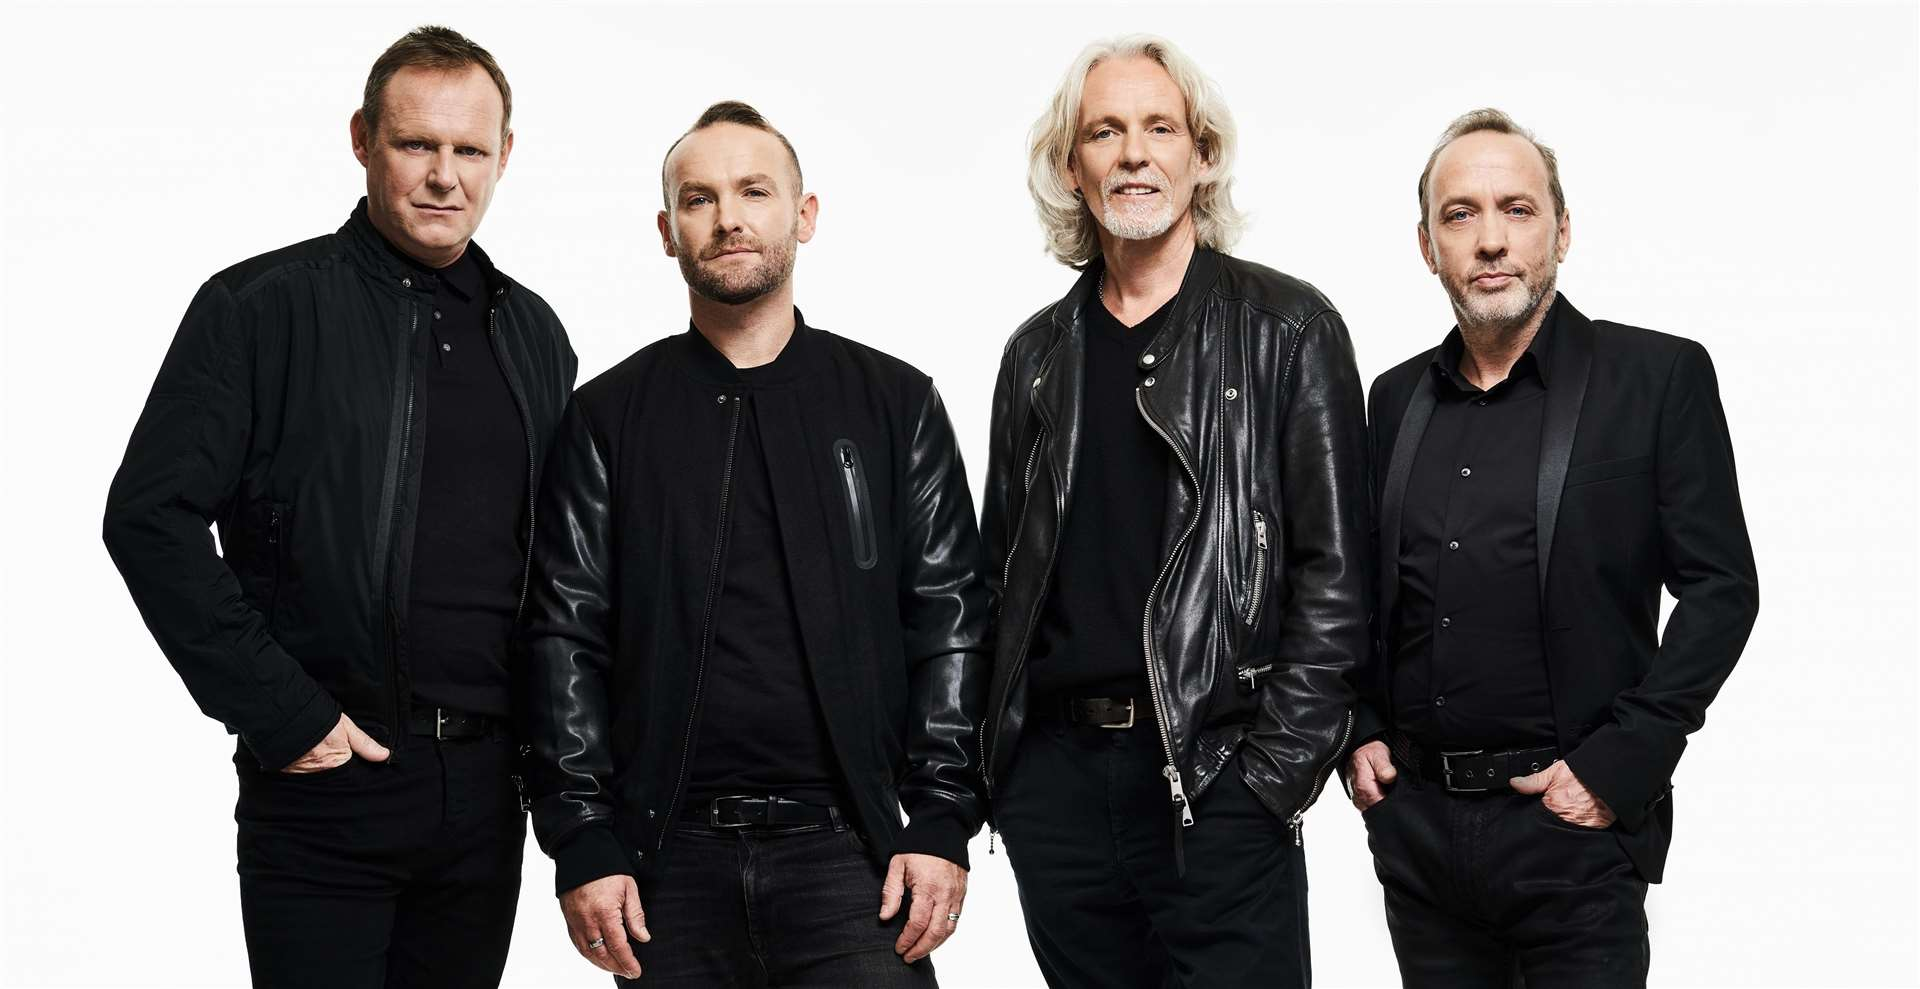 Wet Wet Wet will be at Let's Rock